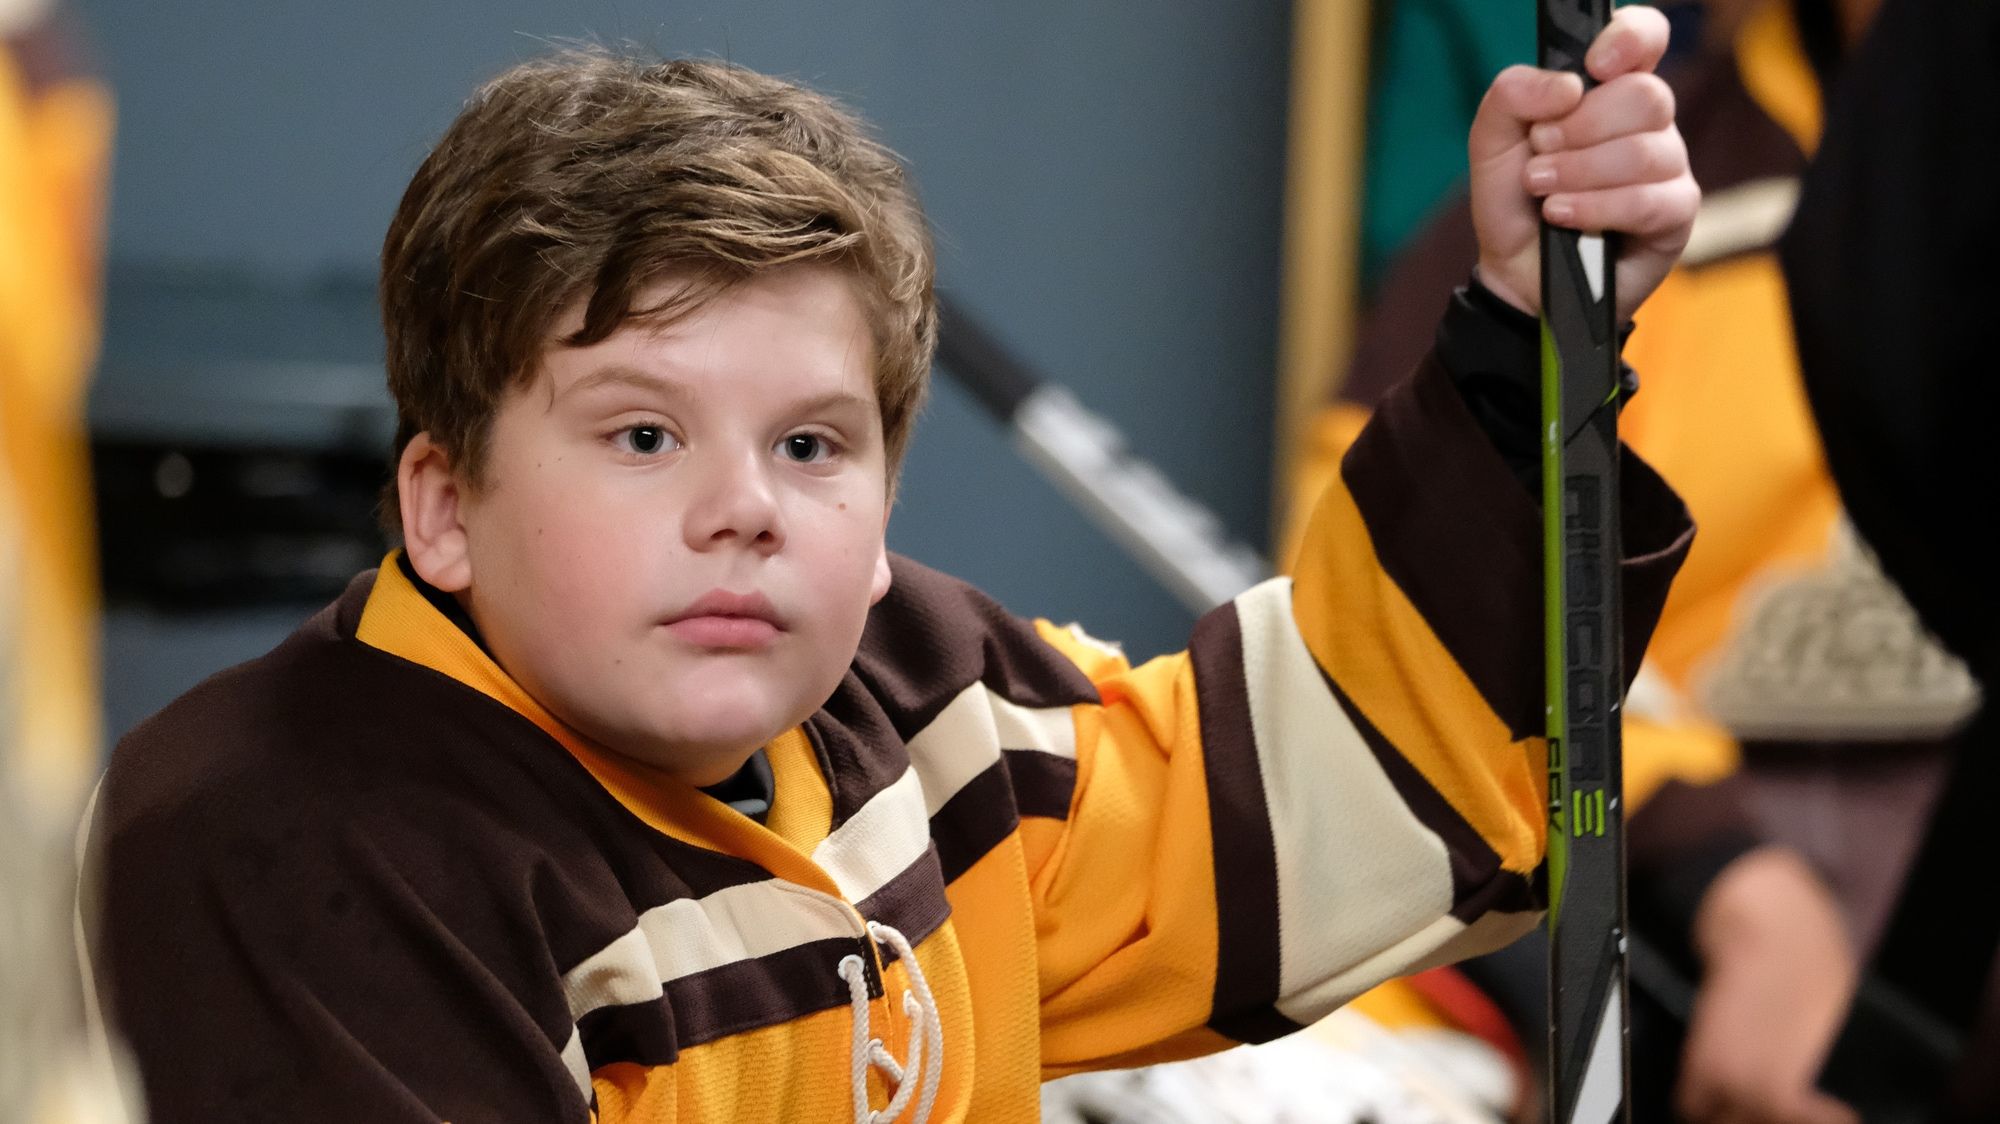 """THE MIGHTY DUCKS: GAME CHANGERS - """"State of Play"""" - The Don't Bothers are forced to choose what's really important, as they face the Ducks at States. (Disney/Liane Hentscher) MAXWELL SIMPKINS"""